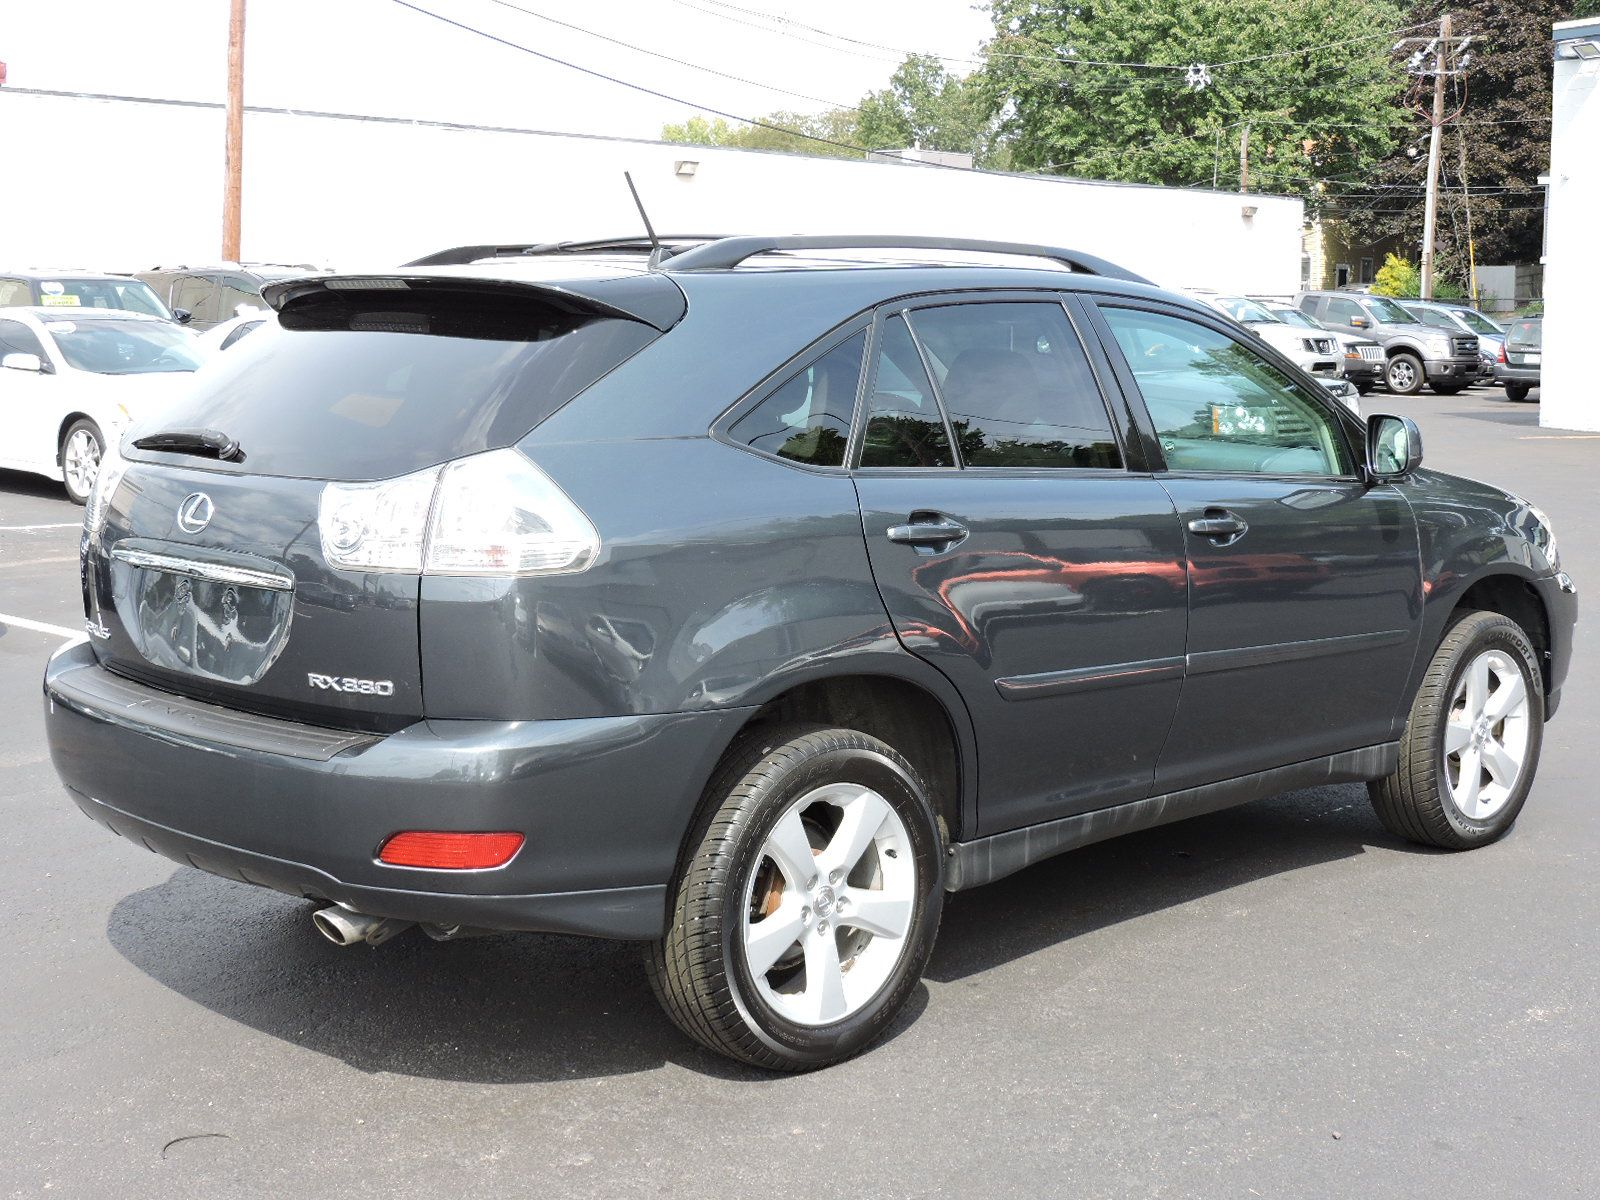 2005 Lexus RX 330 - All Wheel Drive